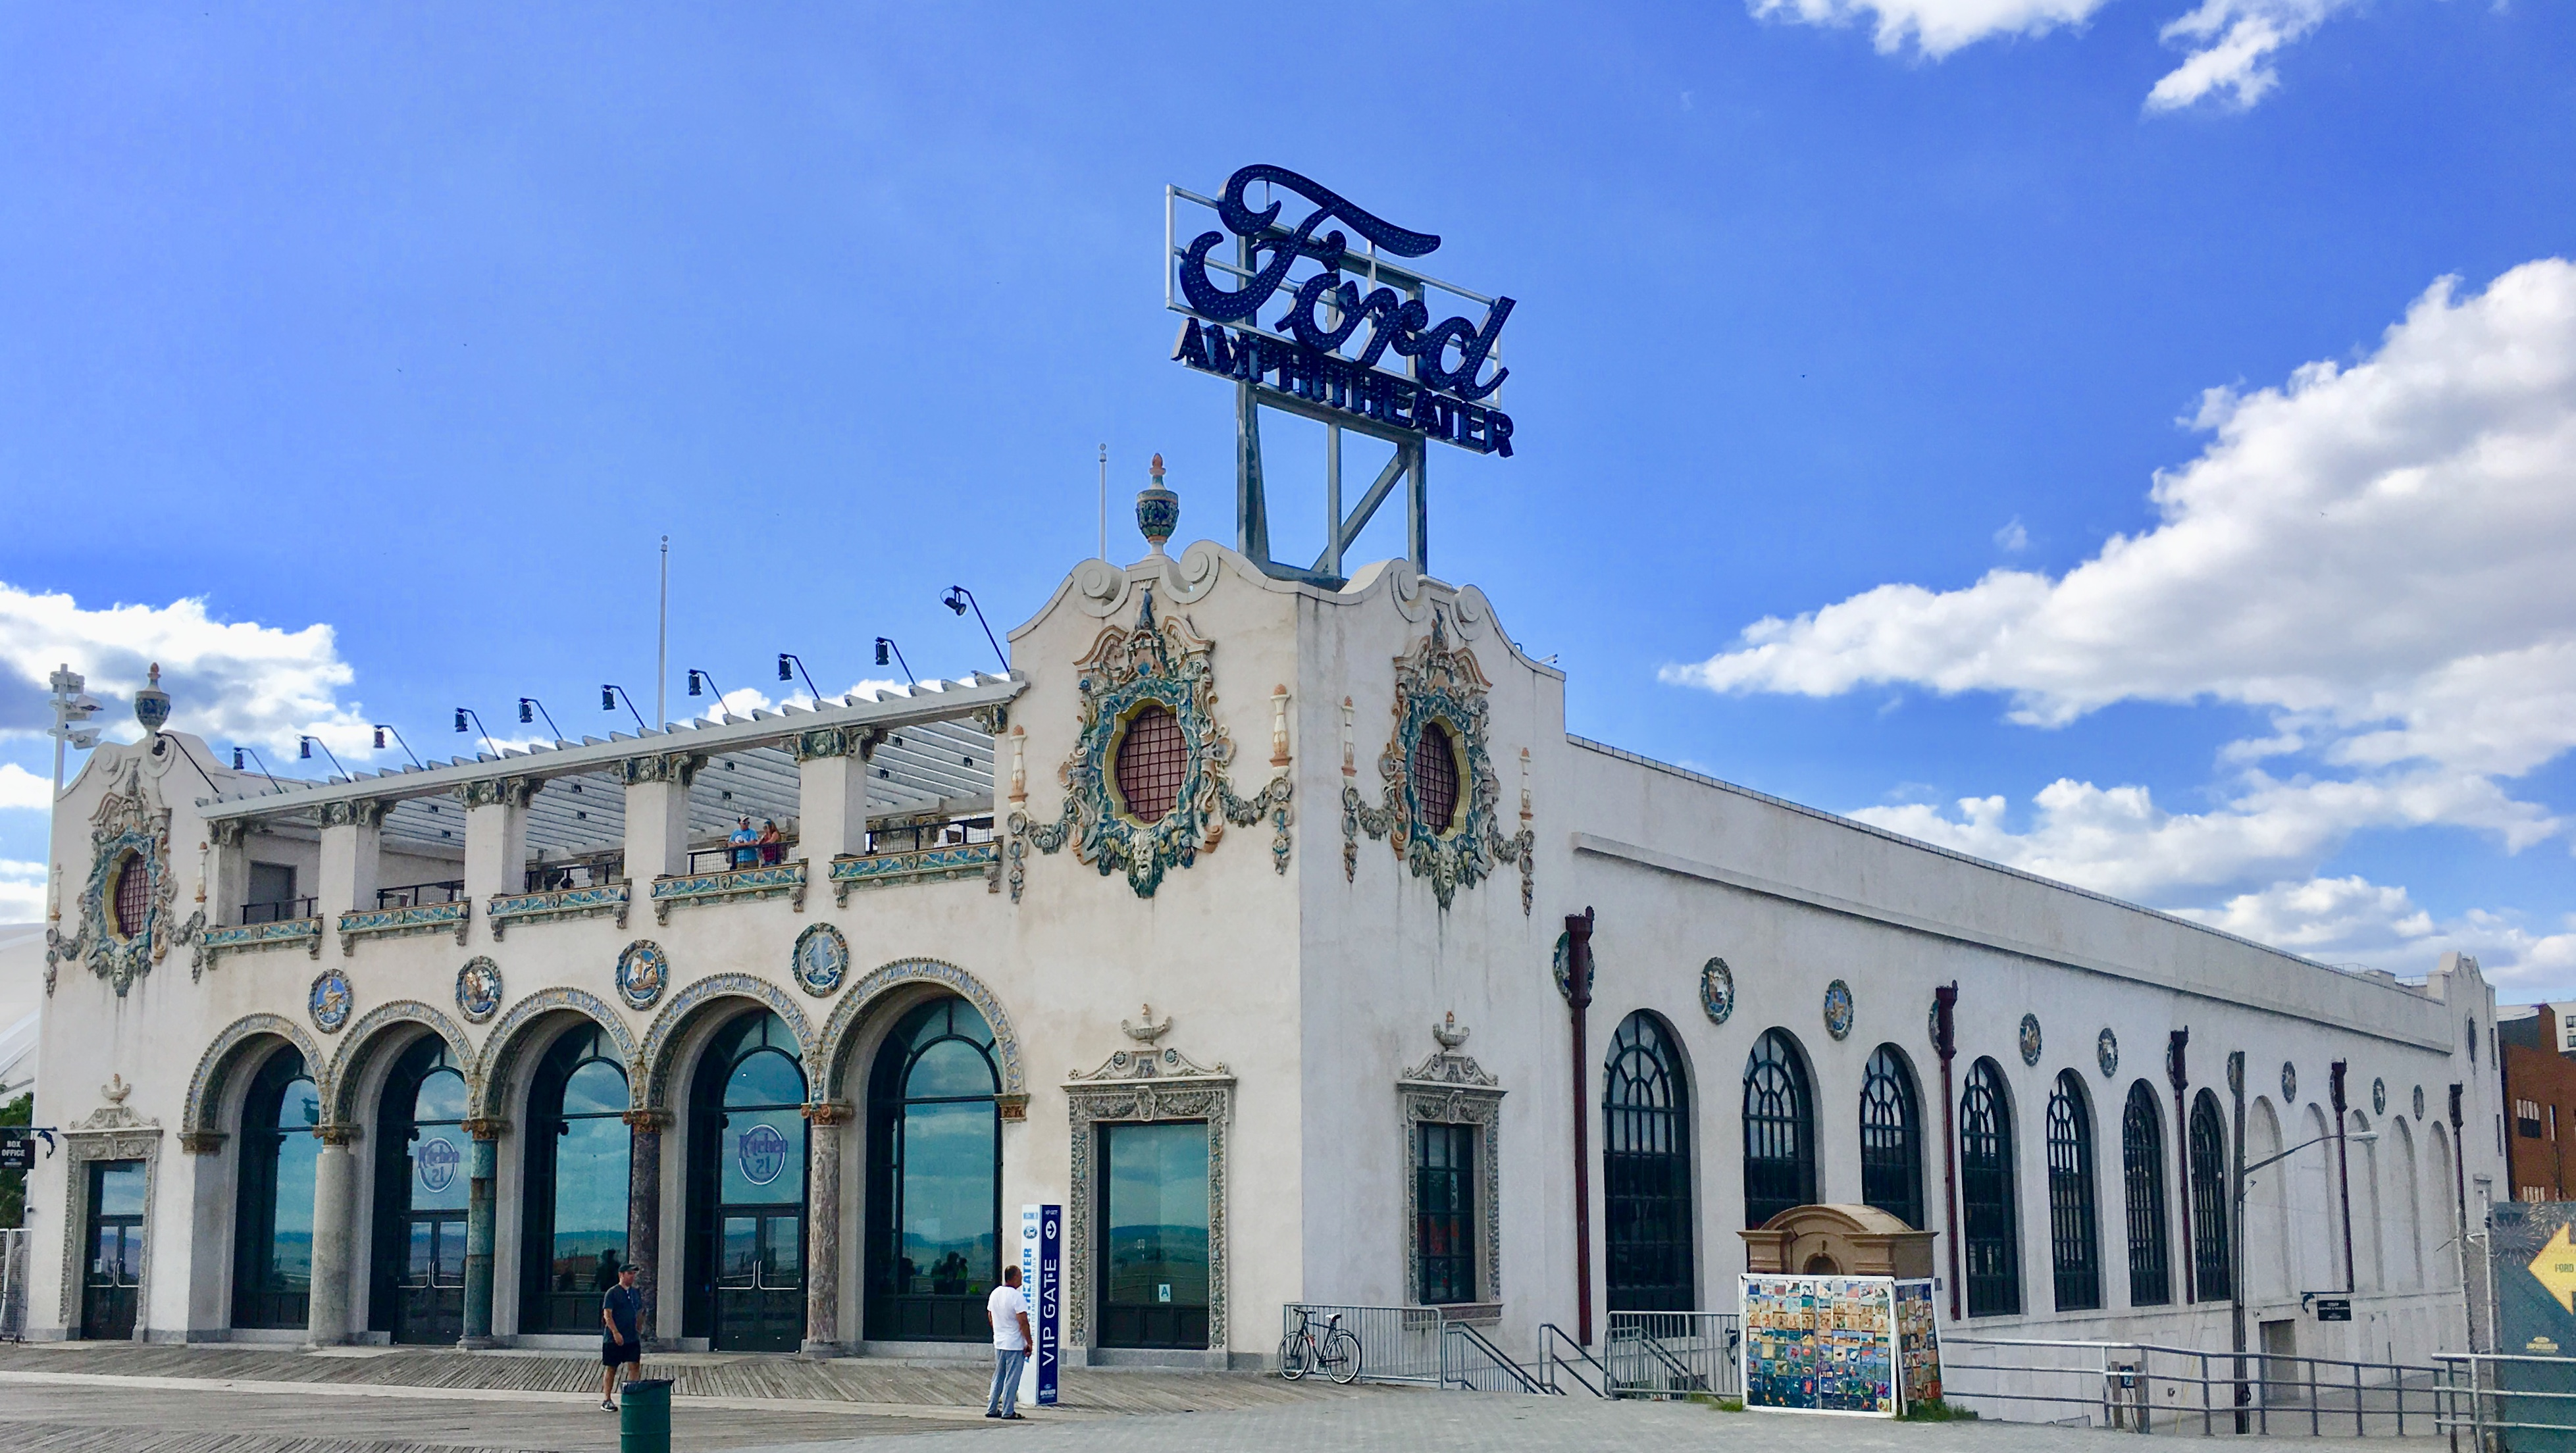 The landmarked former Childs Restaurant is now part of Ford Amphitheater. Eagle photo by Lore Croghan